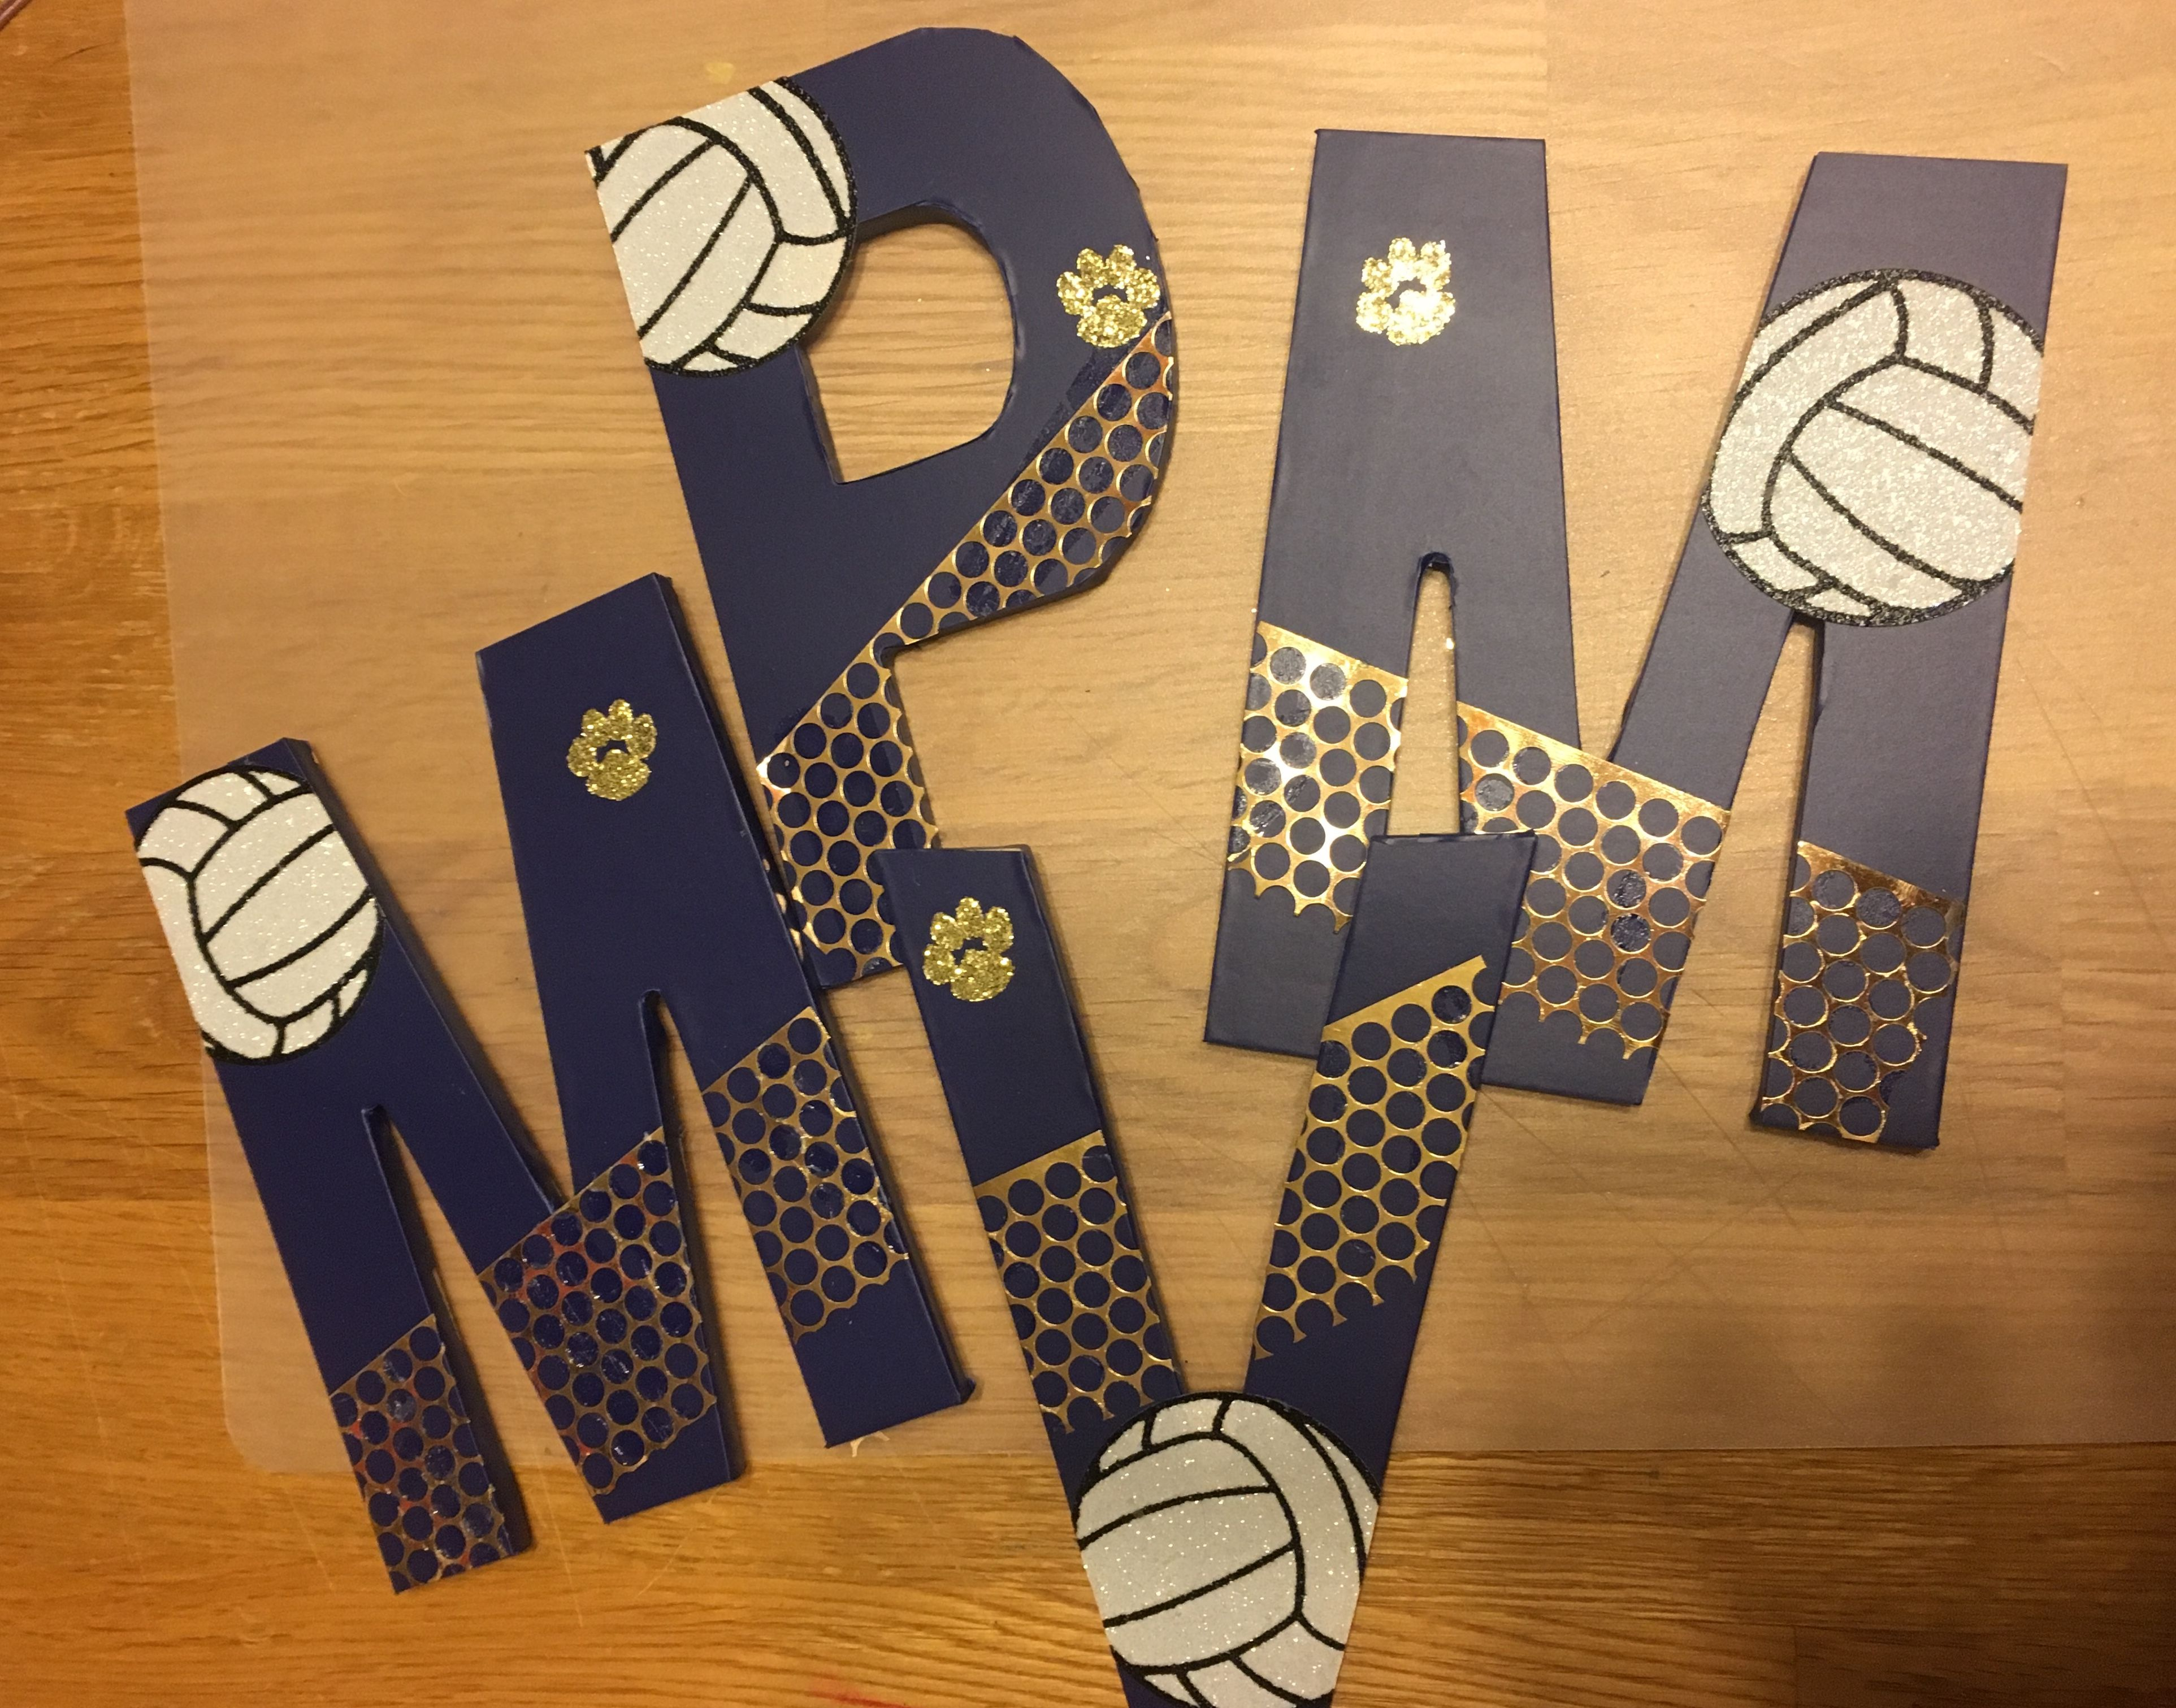 Volleyball Senior Night Gifts Volleyball Senior Night Gifts Volleyball Team Gifts Senior Night Gifts